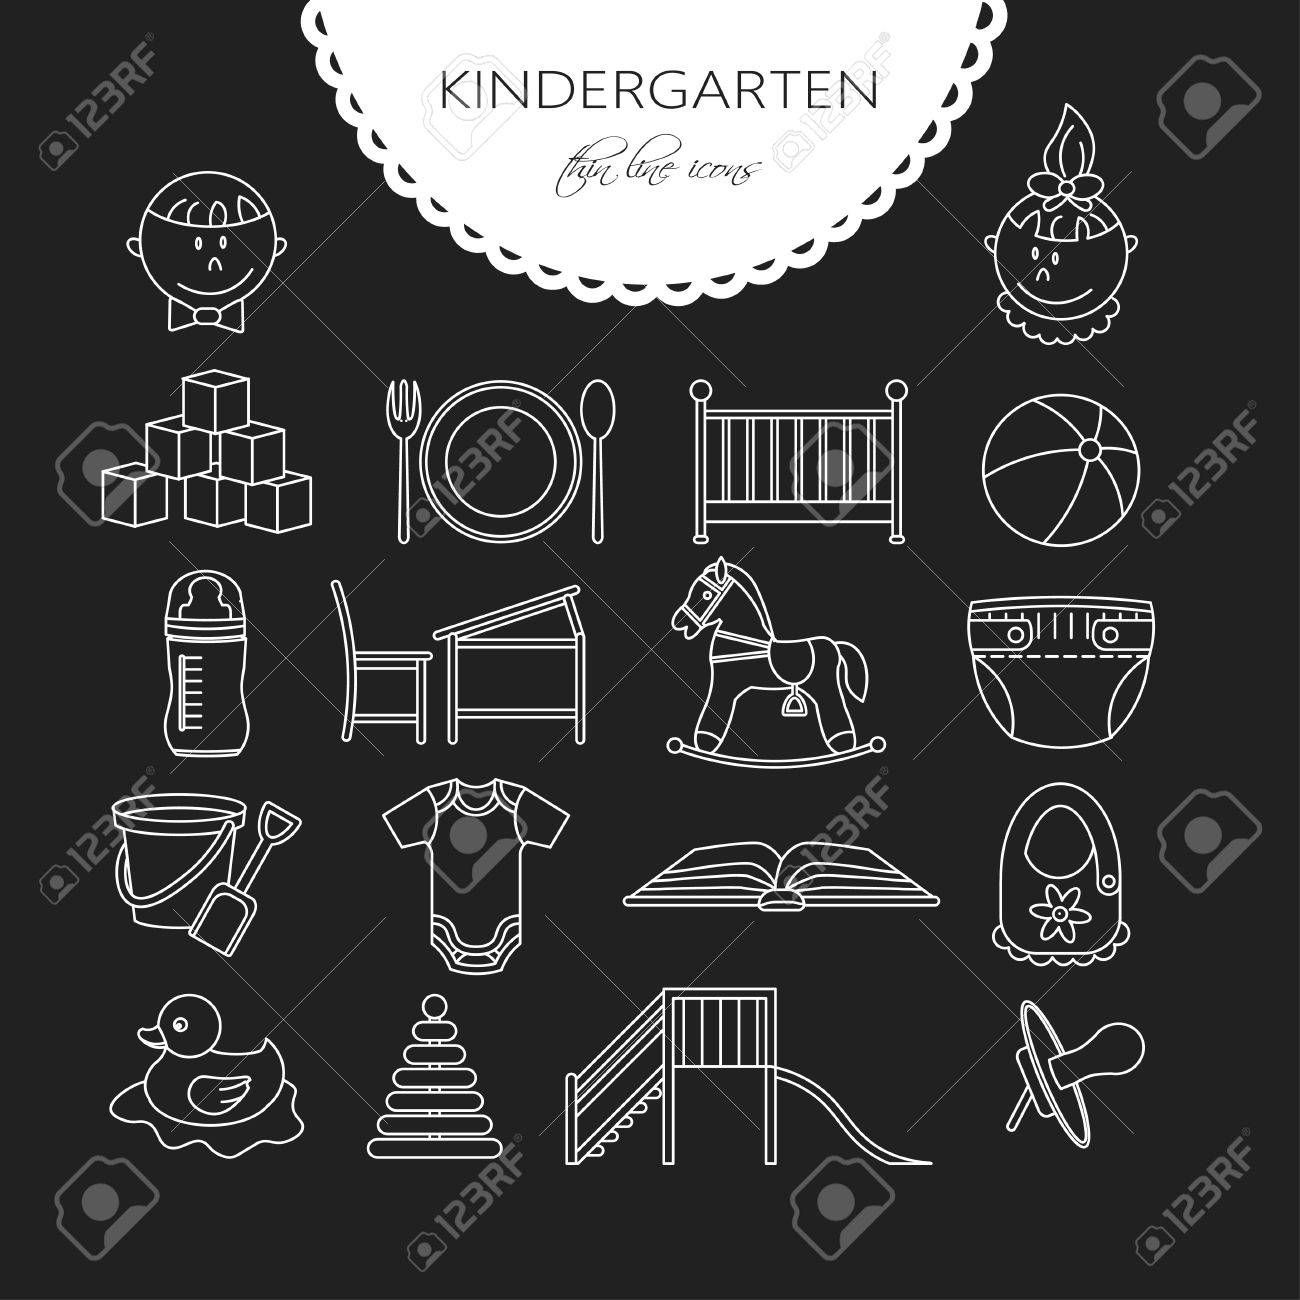 Baby cribs for daycare centers - Child And Baby Care Center Thin Line Icons Kindergarten Vector Diaper Sandpit